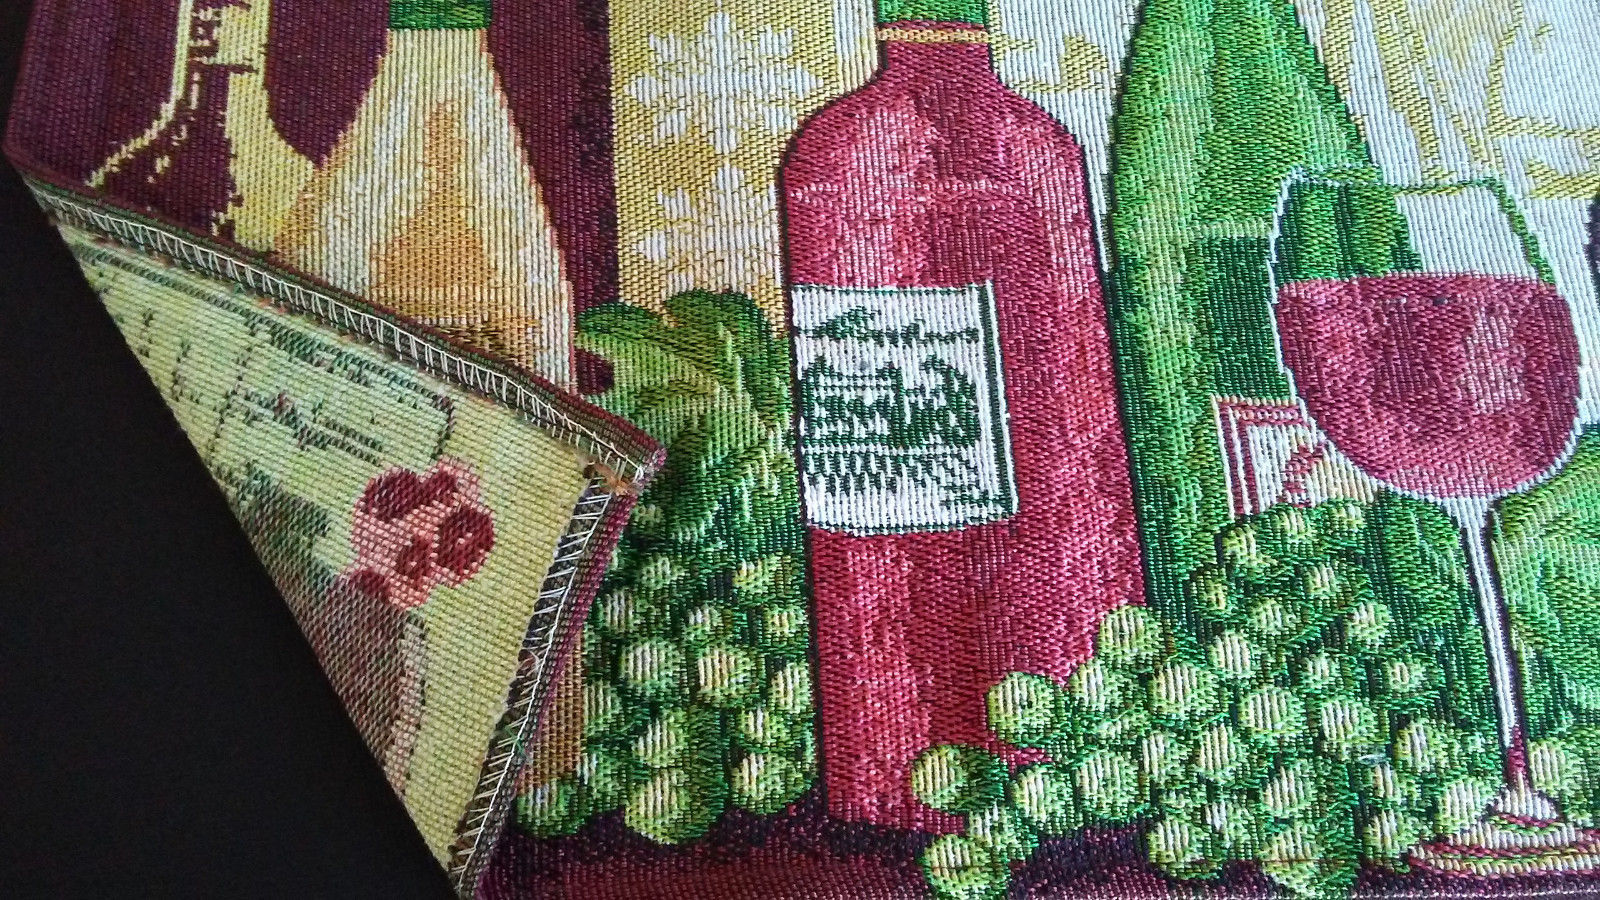 WINE TAPESTRY PLACEMATS Set of 4 Red White Wine Bottles Grapes Fabric 13x19 NEW